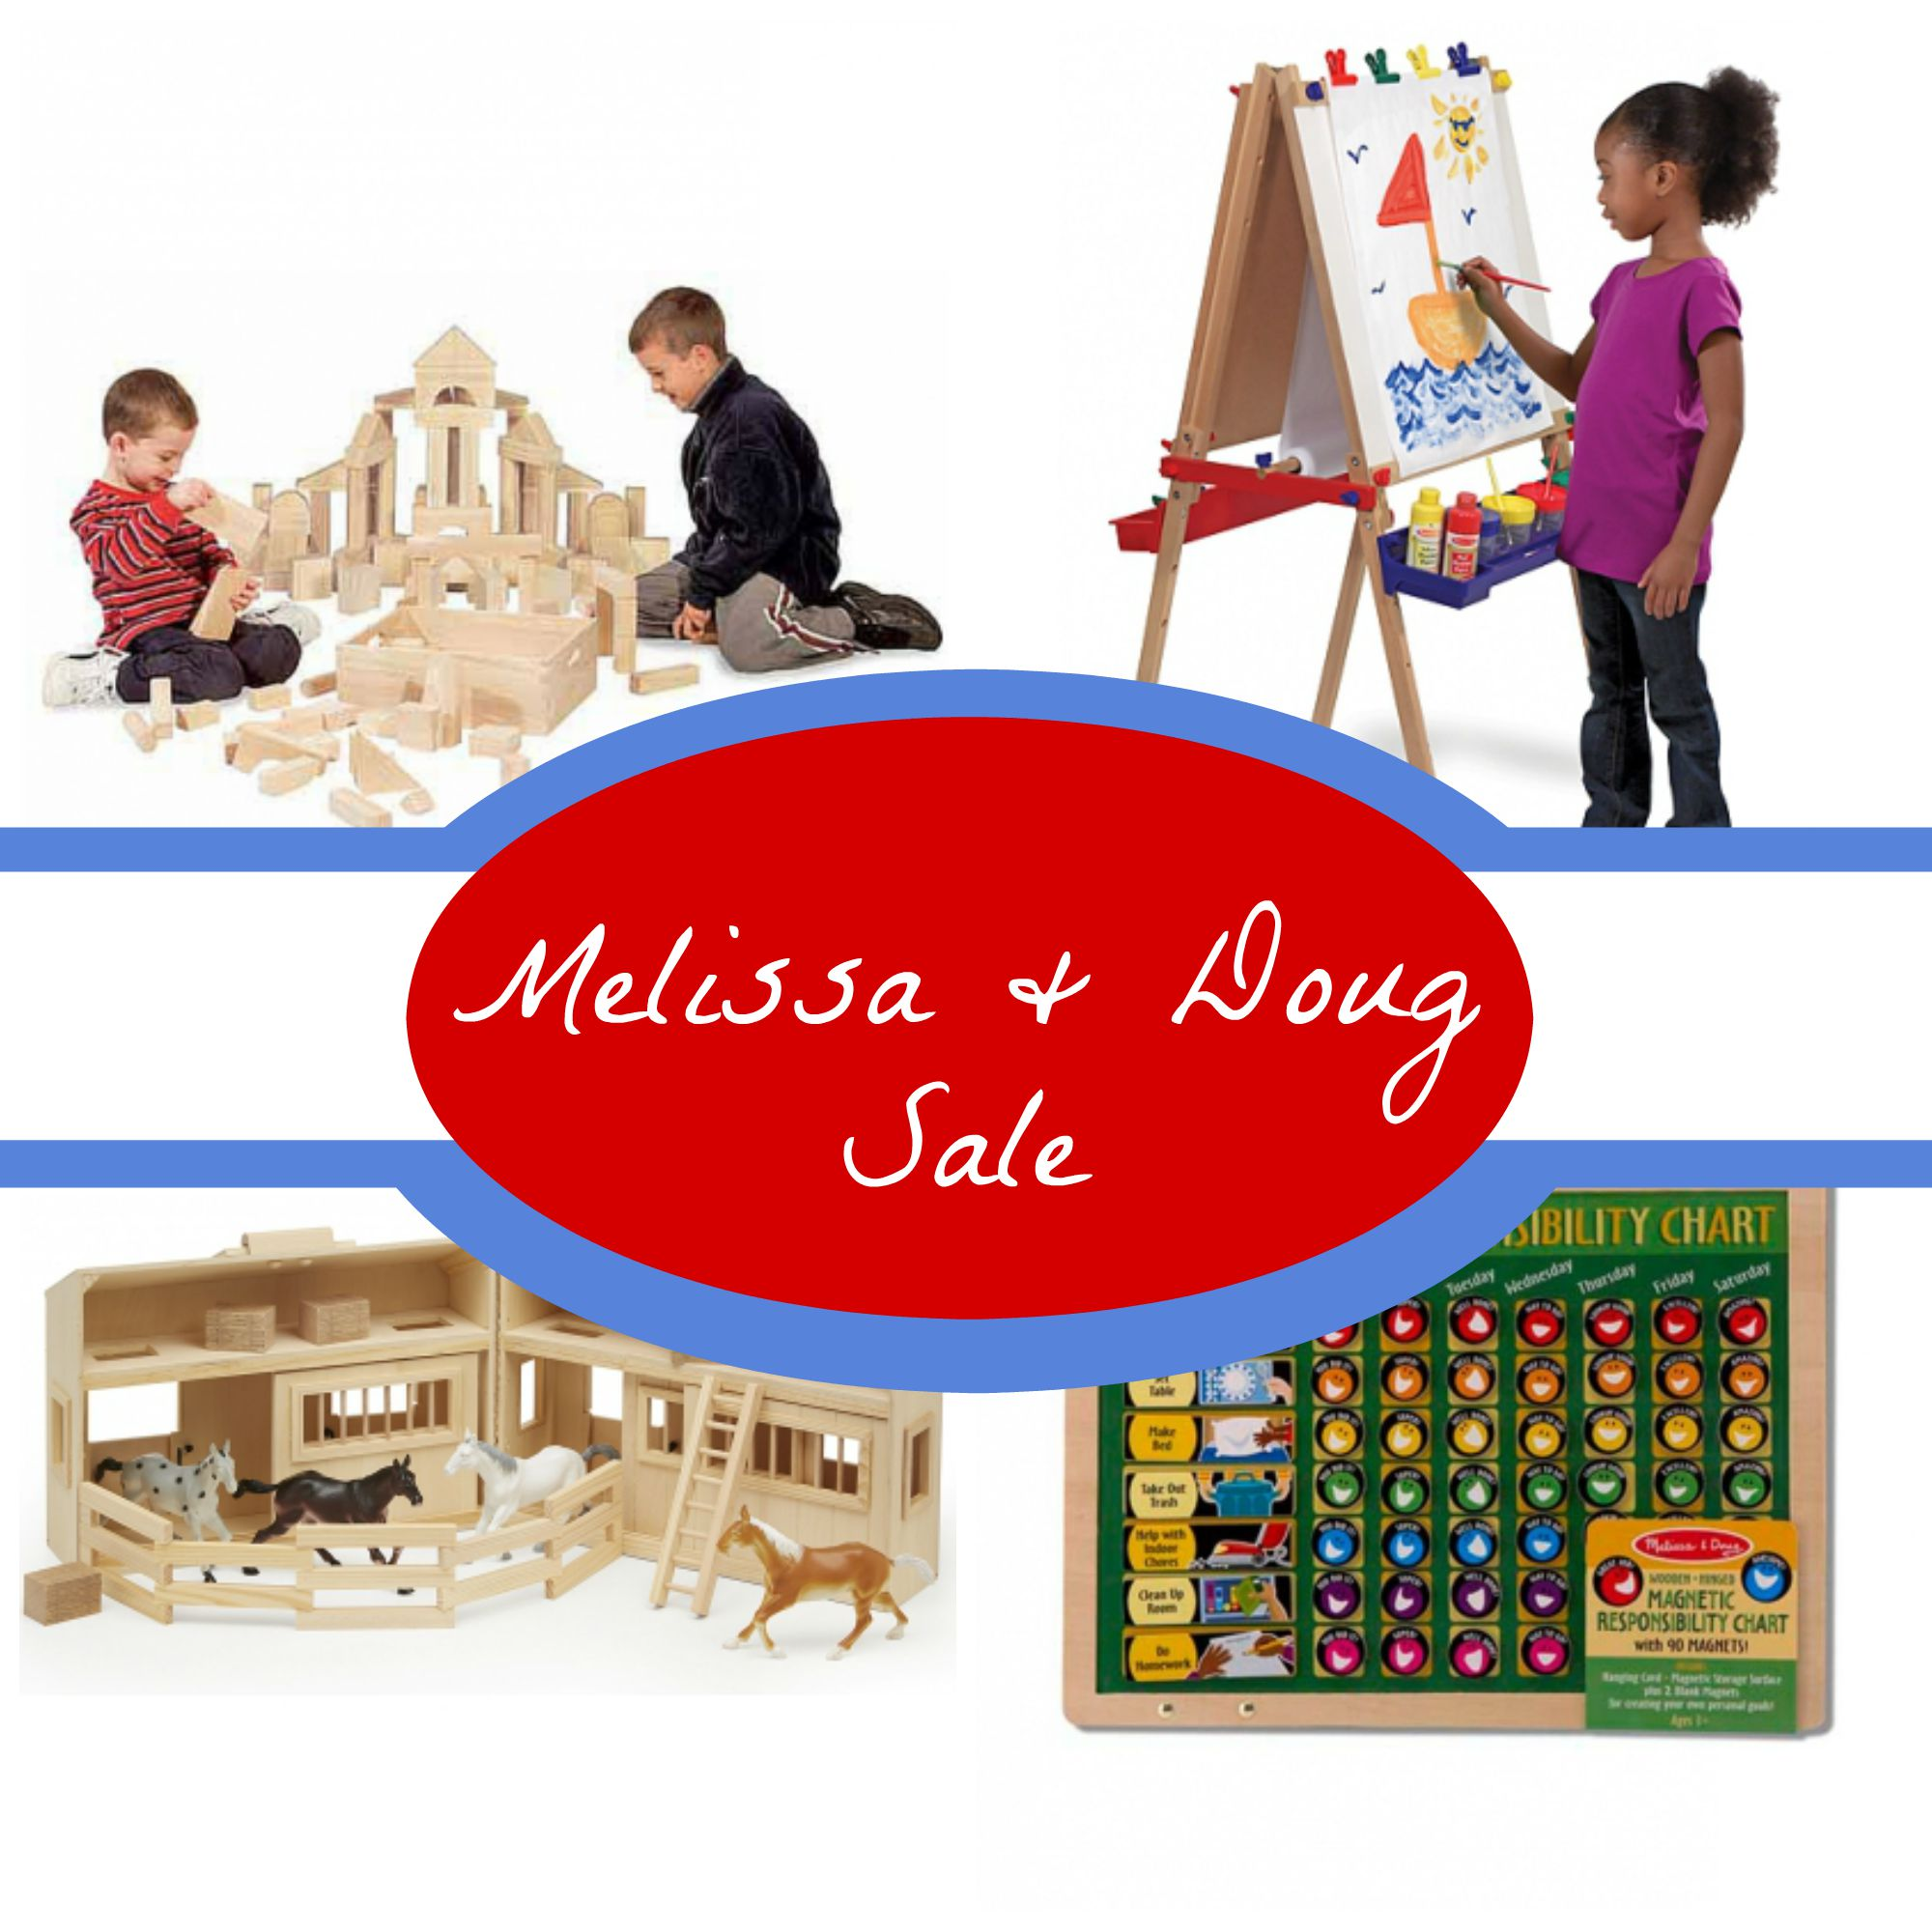 Melissa & Doug Sale - Up to 50% Off!